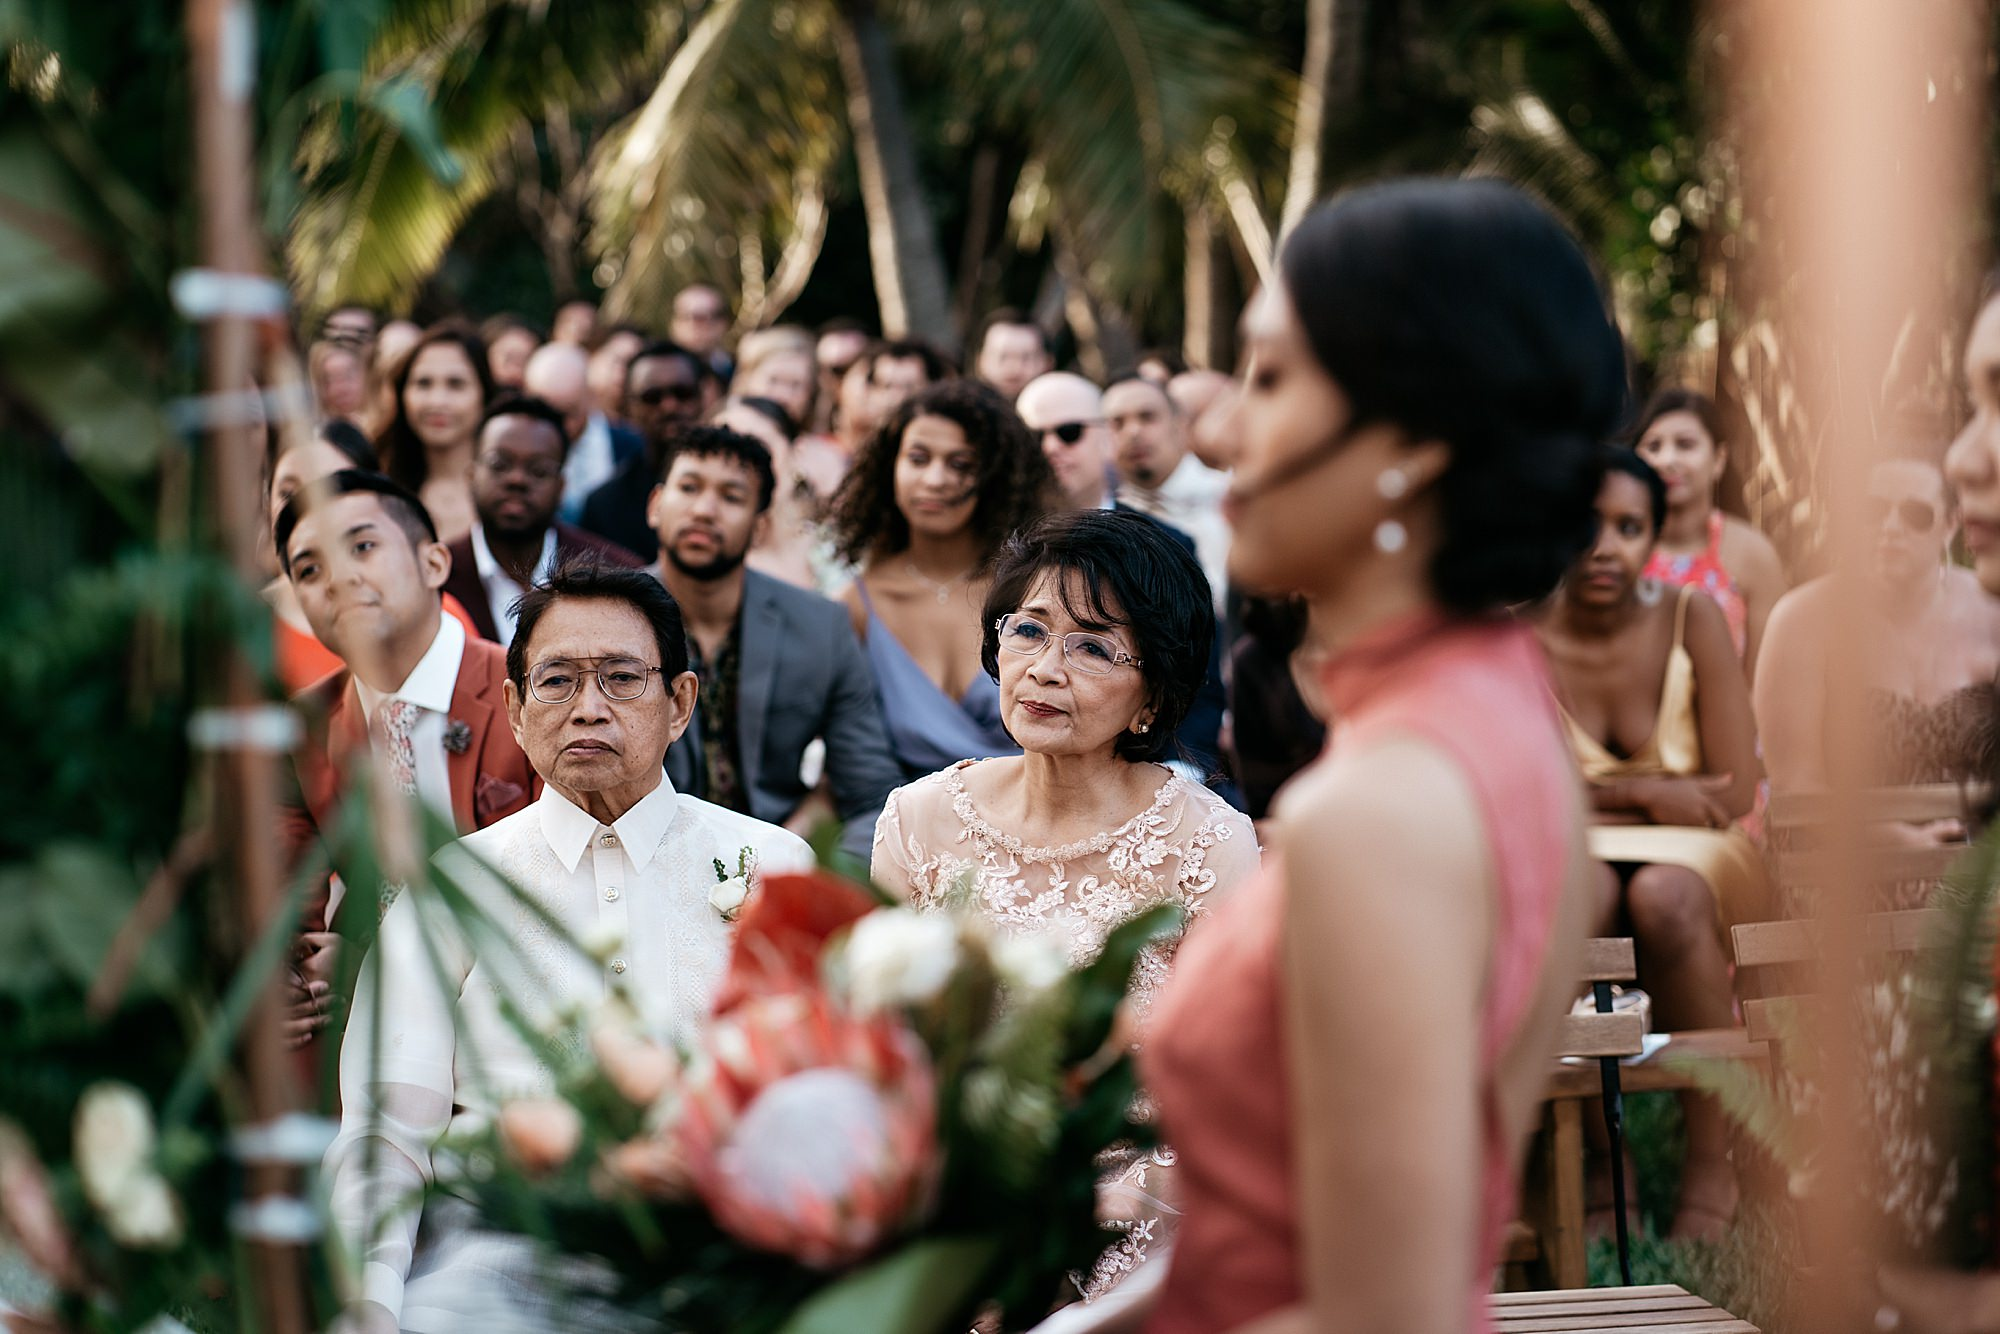 natural wedding photography miami the kampong 0458 1